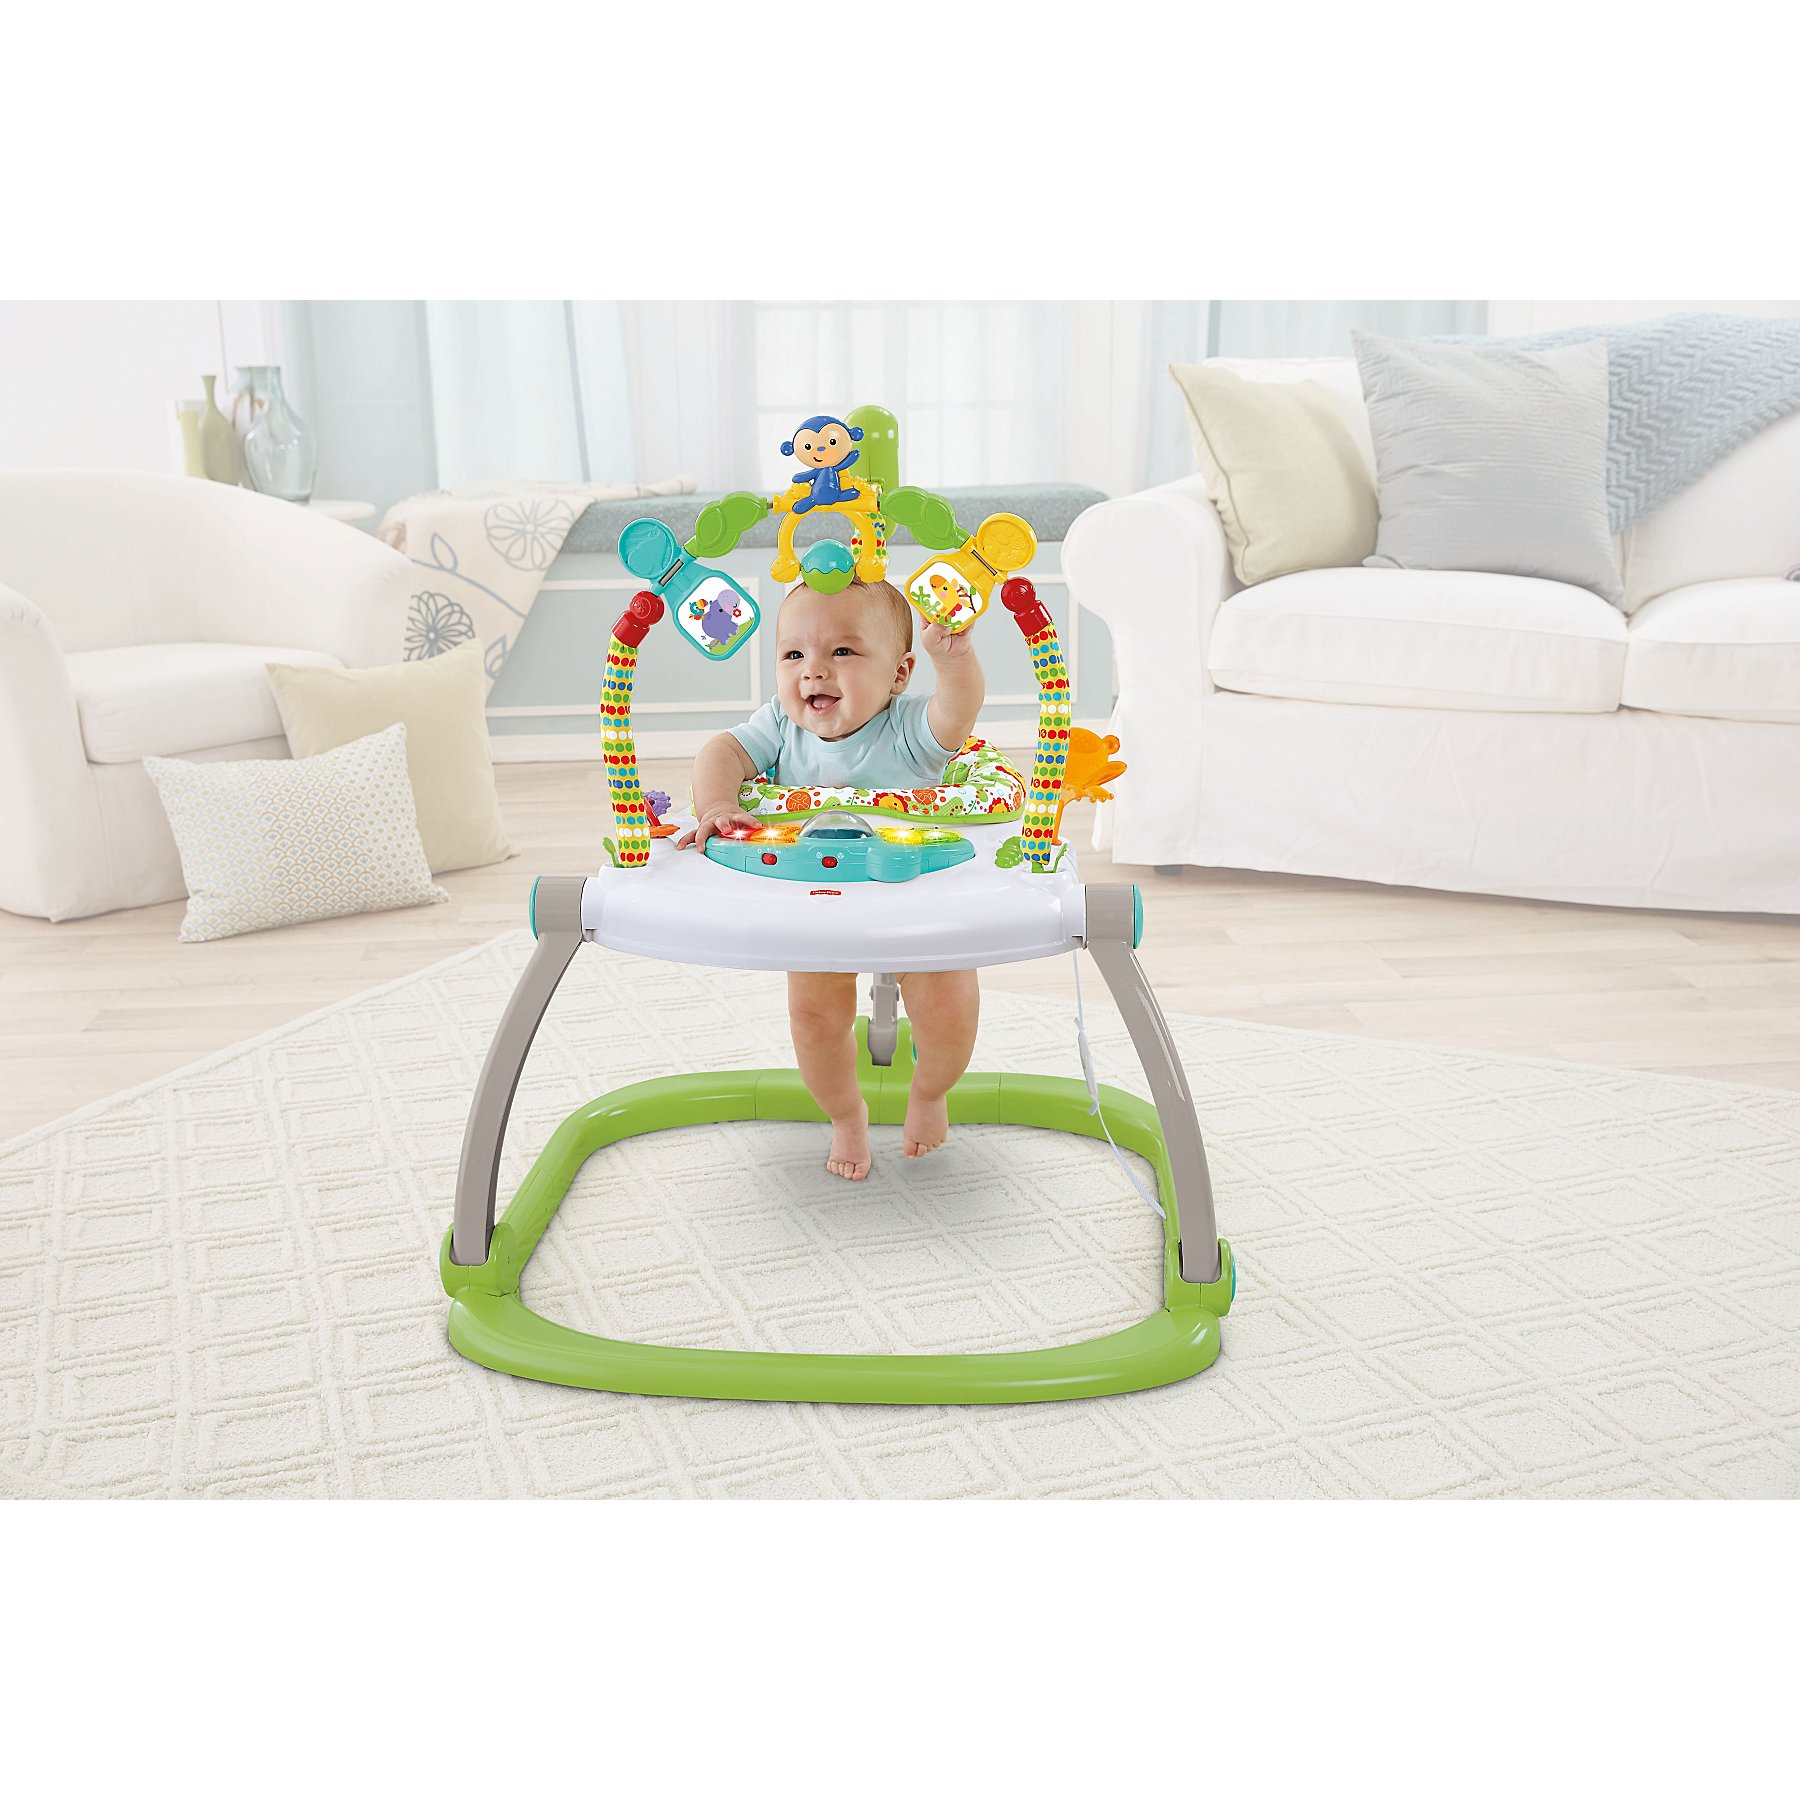 8929dff8c Fisher-Price Rainforest Friends SpaceSaver Jumperoo